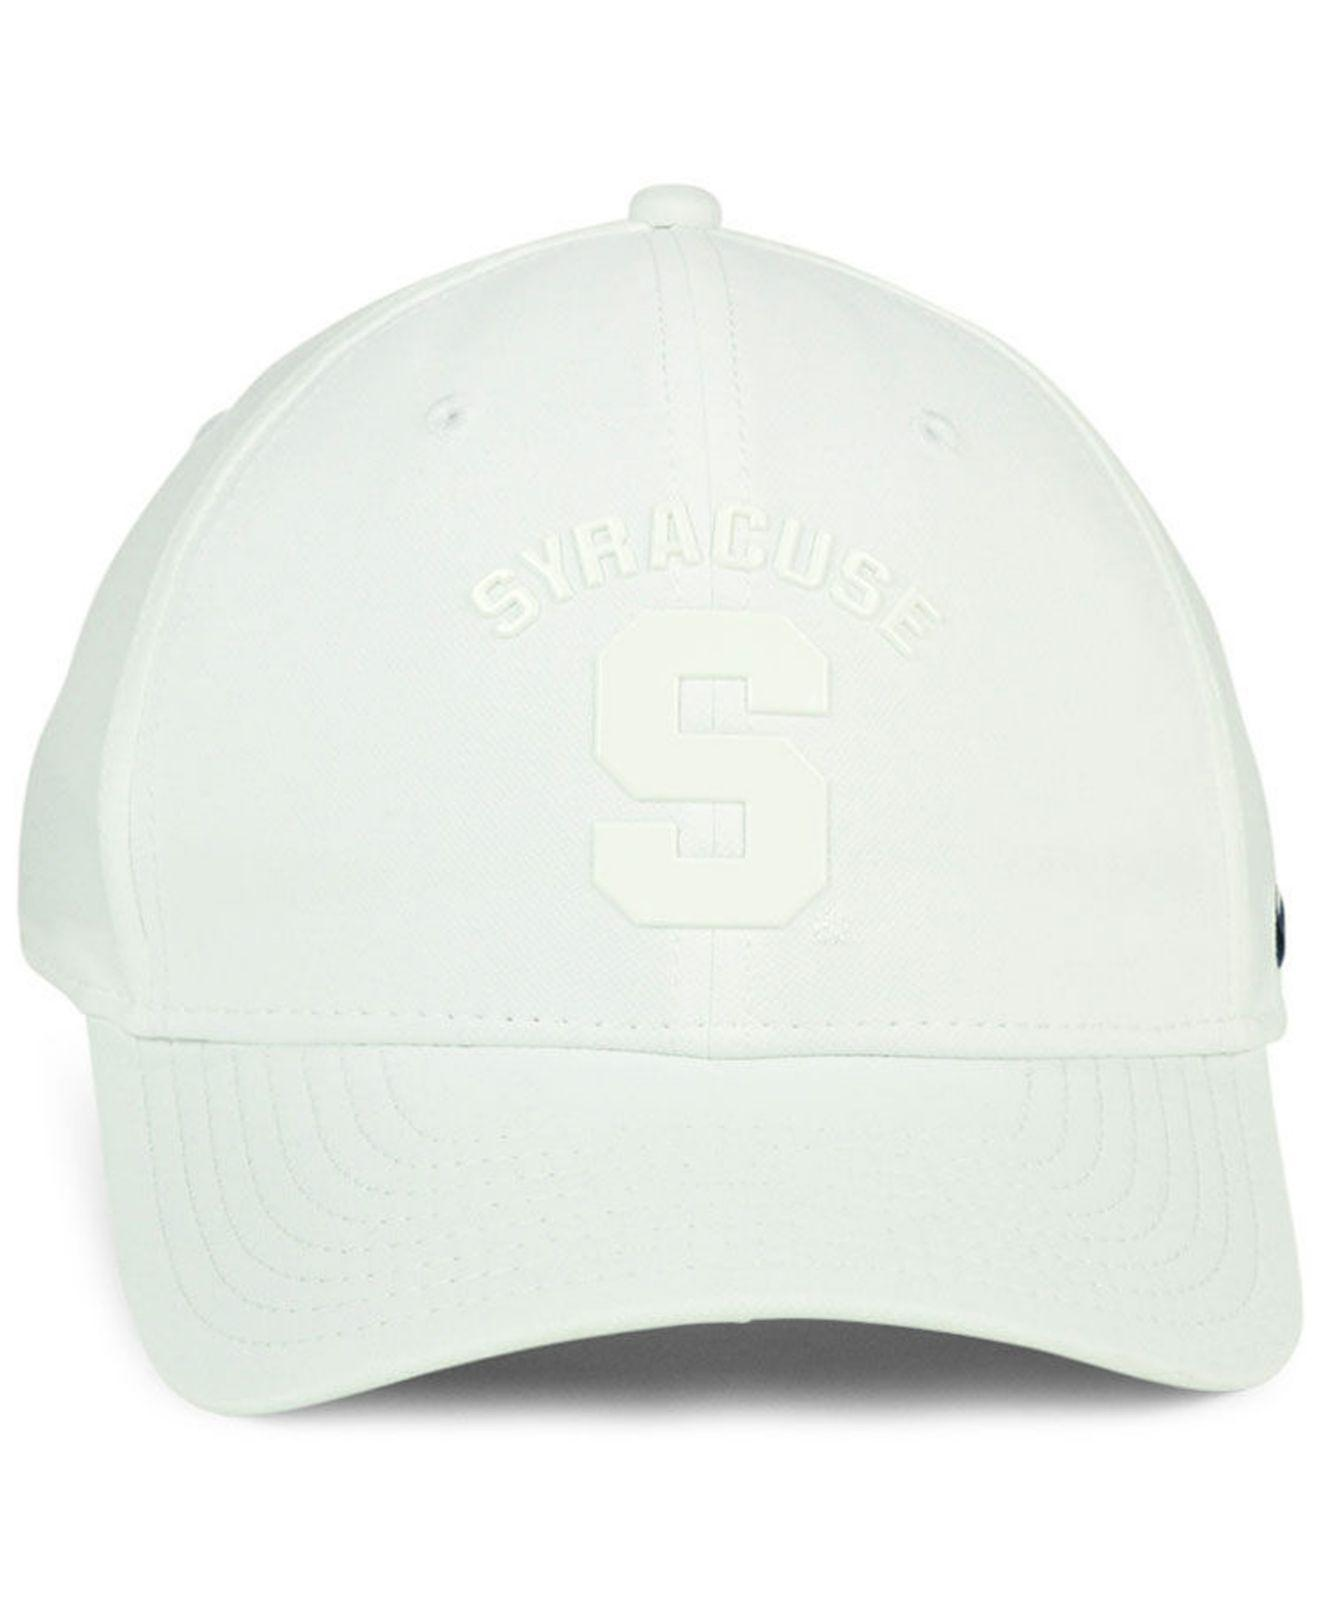 detailed look 0903d 2af67 cheapest nike syracuse orange col cap sports fan shop by lids men macys  d5a52 b9b70  usa lyst nike syracuse orange col cap in white for men 2ad3d  70649